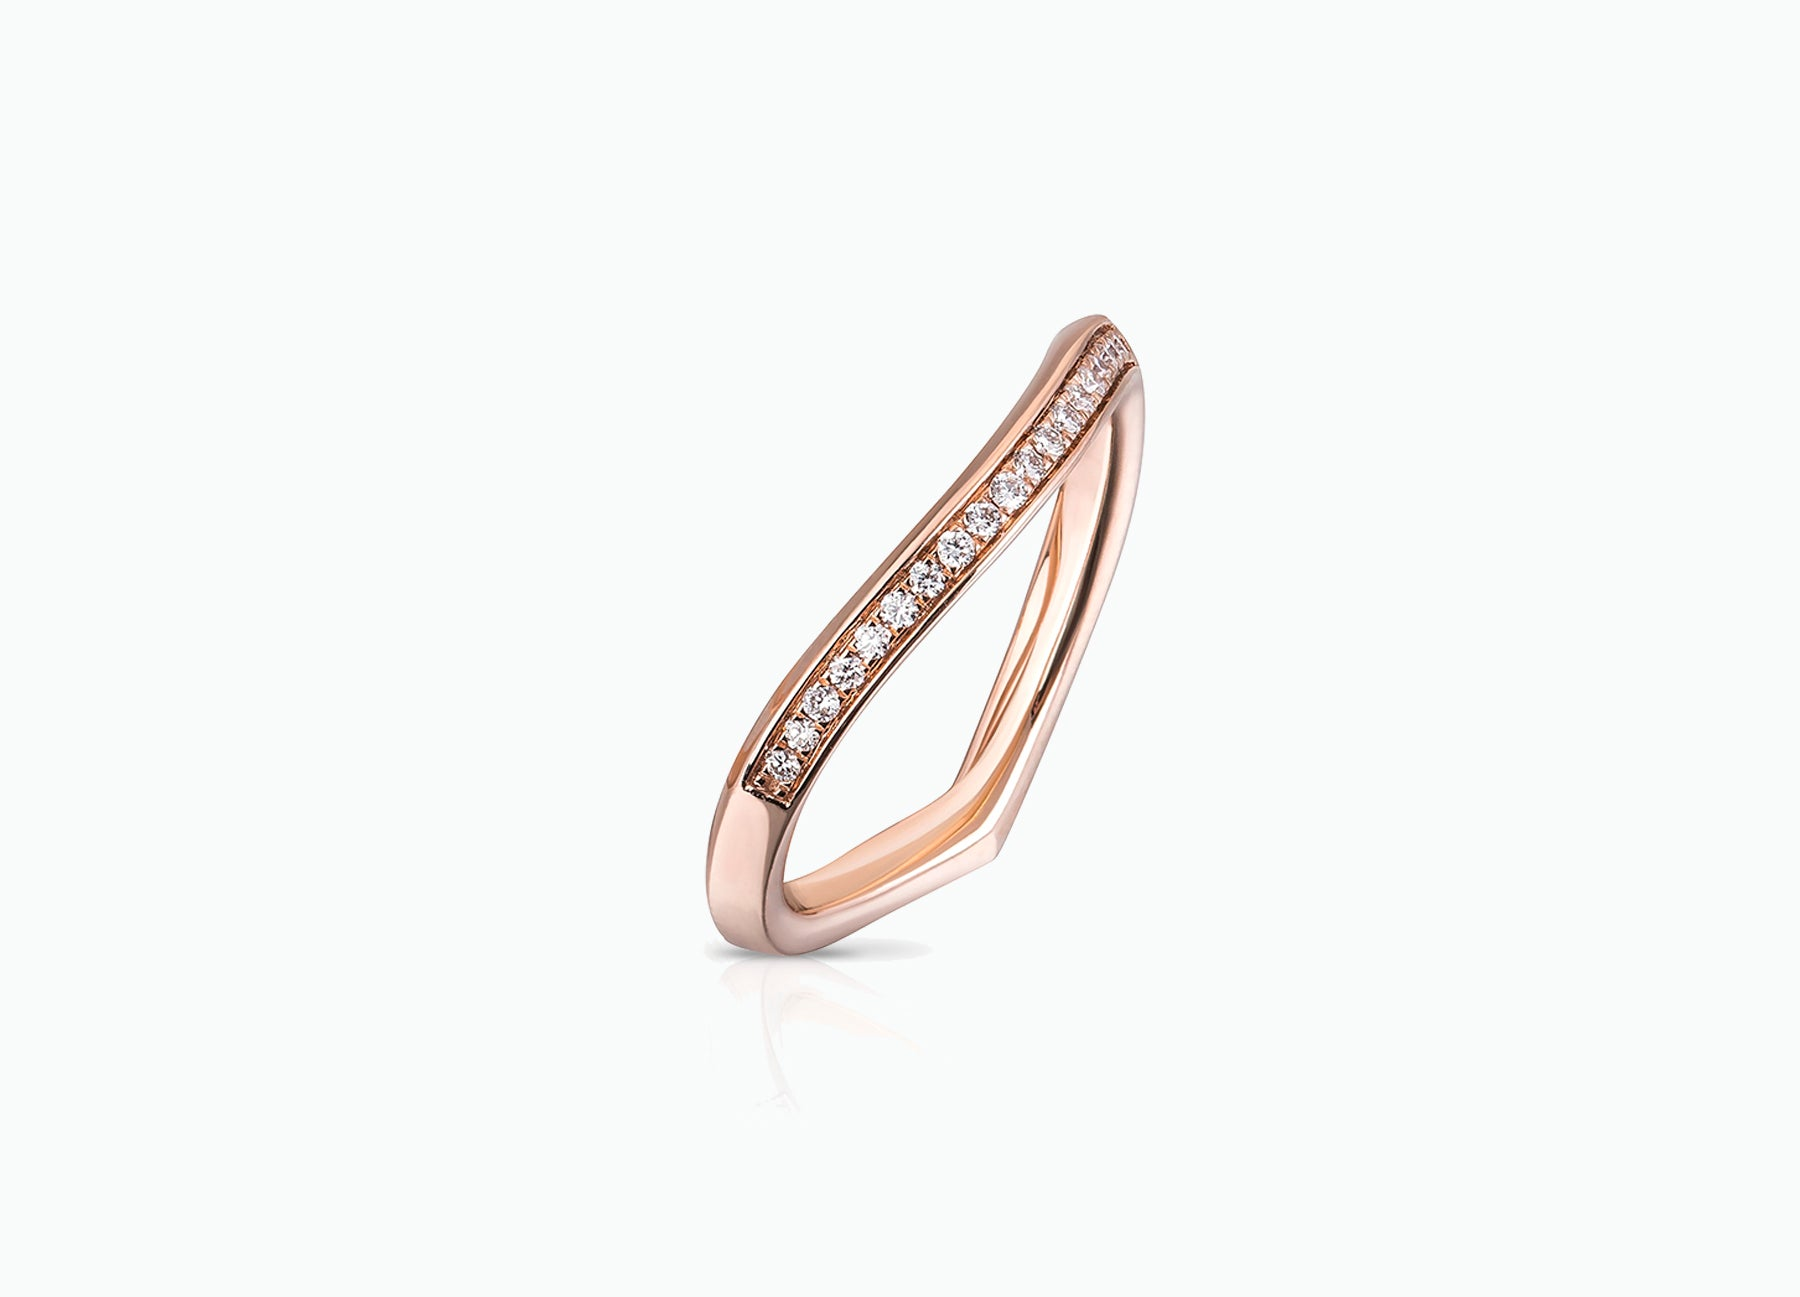 ROSE GOLD LILY PAD WEDDING BAND